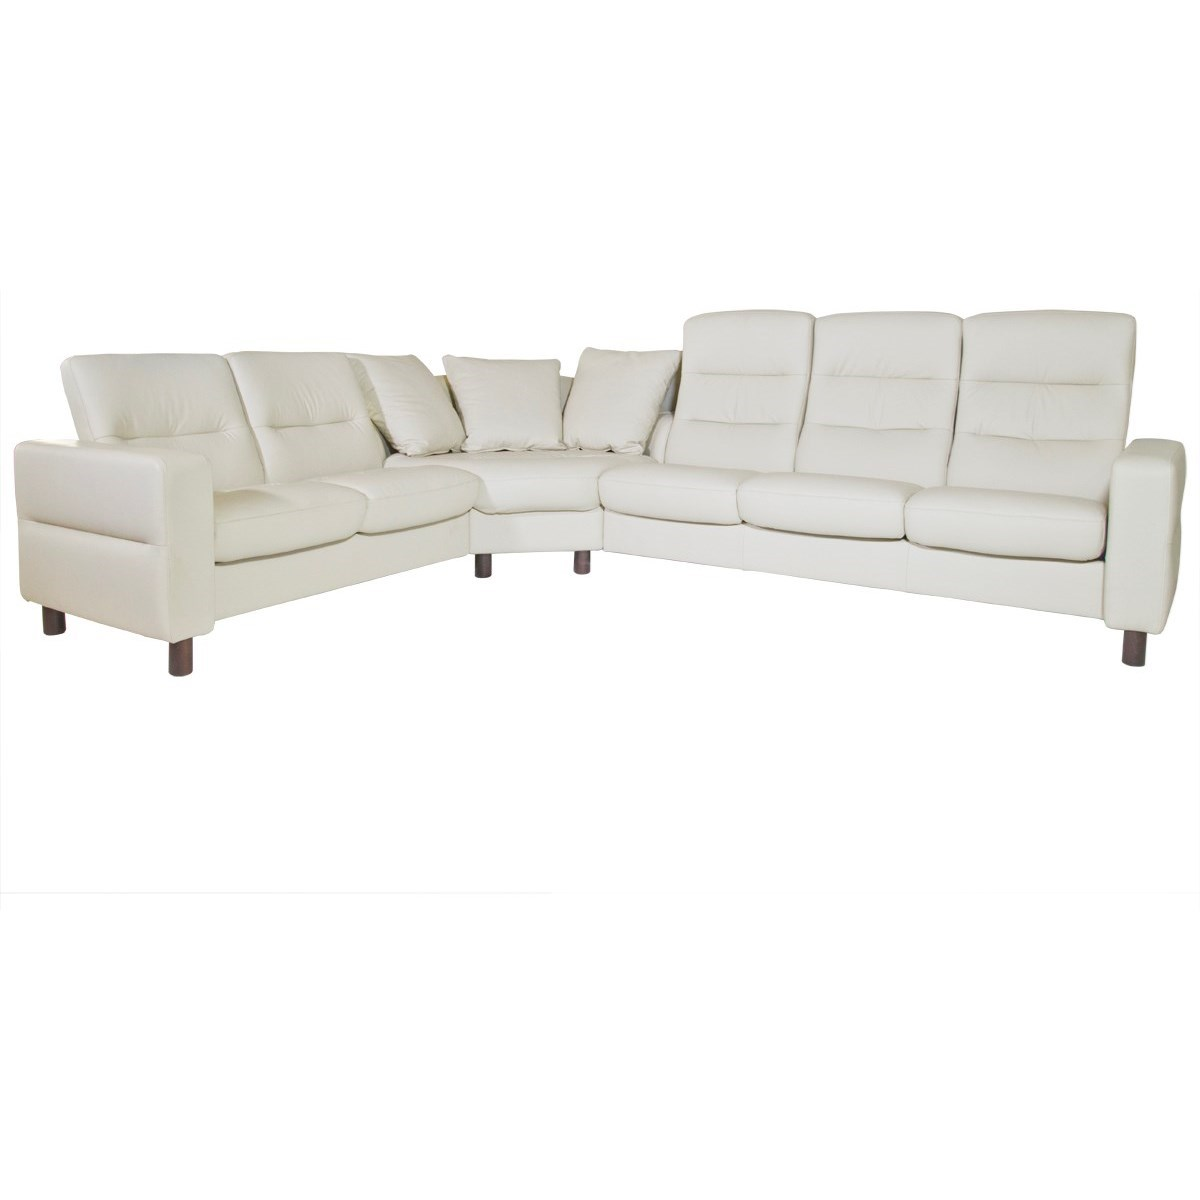 Wave Reclining Sectional by Stressless at HomeWorld Furniture